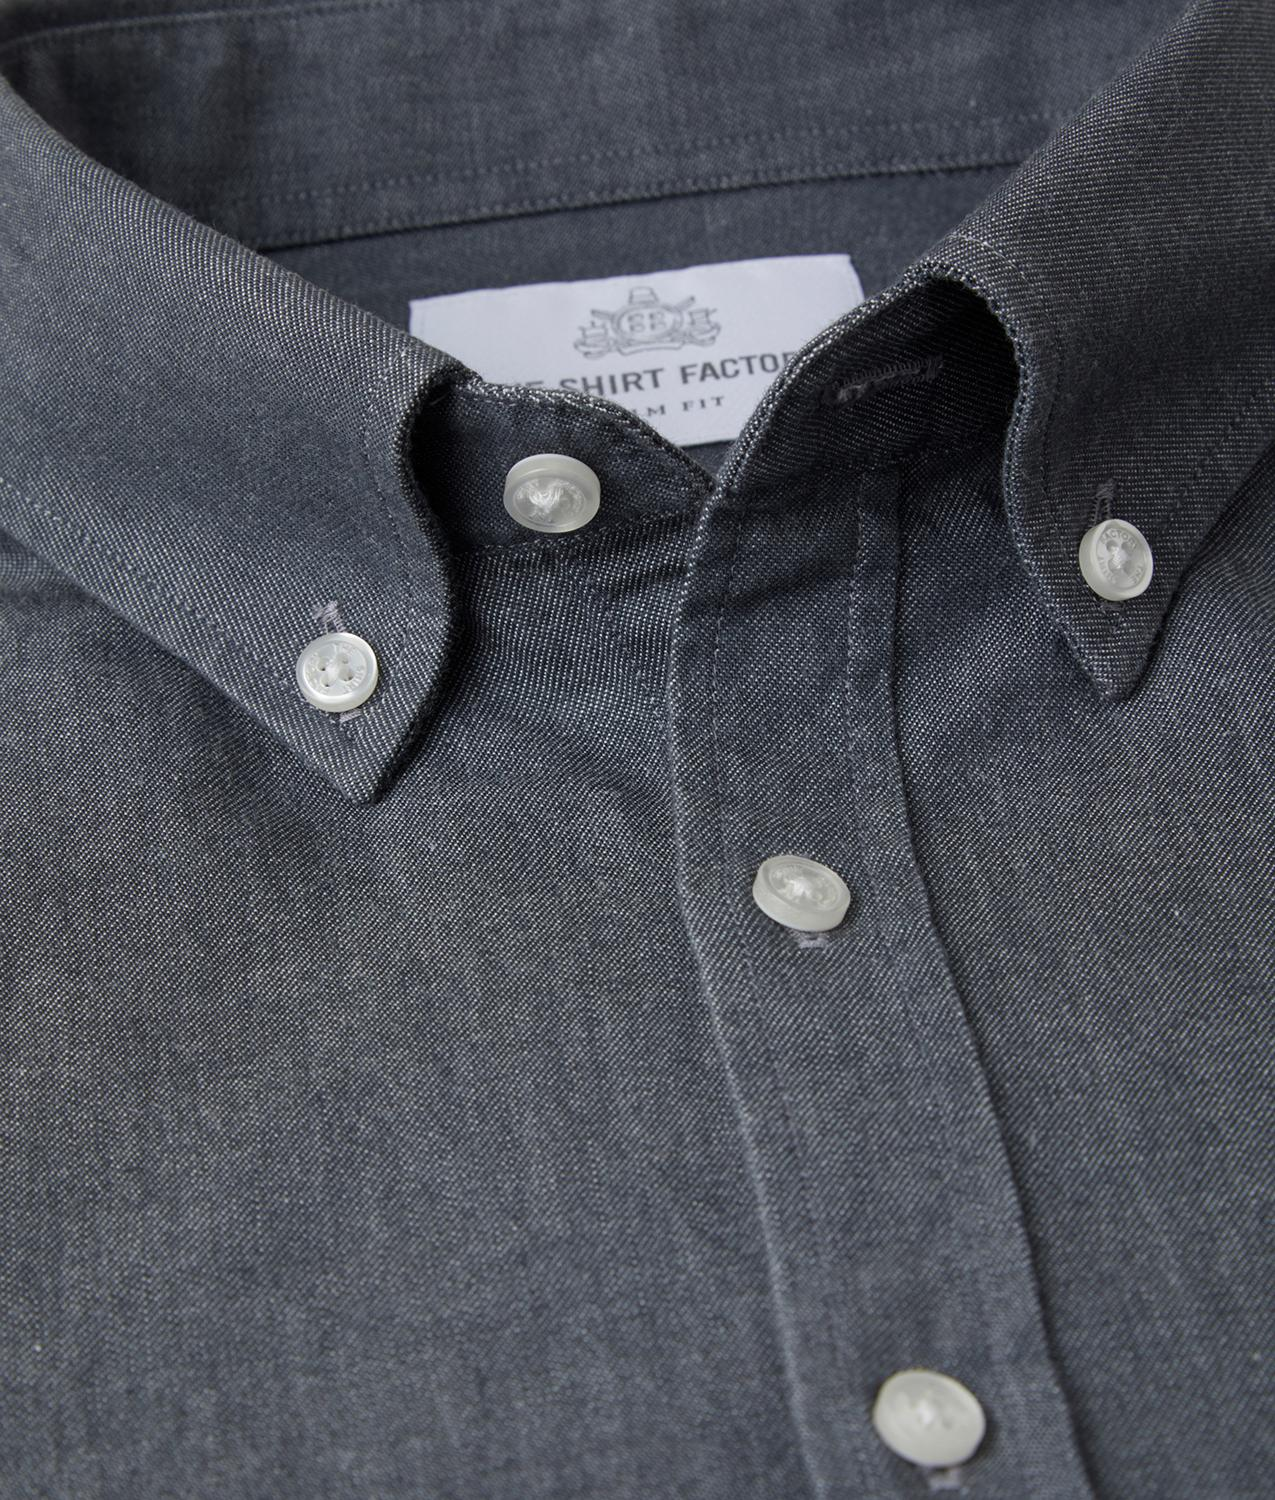 Shirt York Denim The Shirt Factory